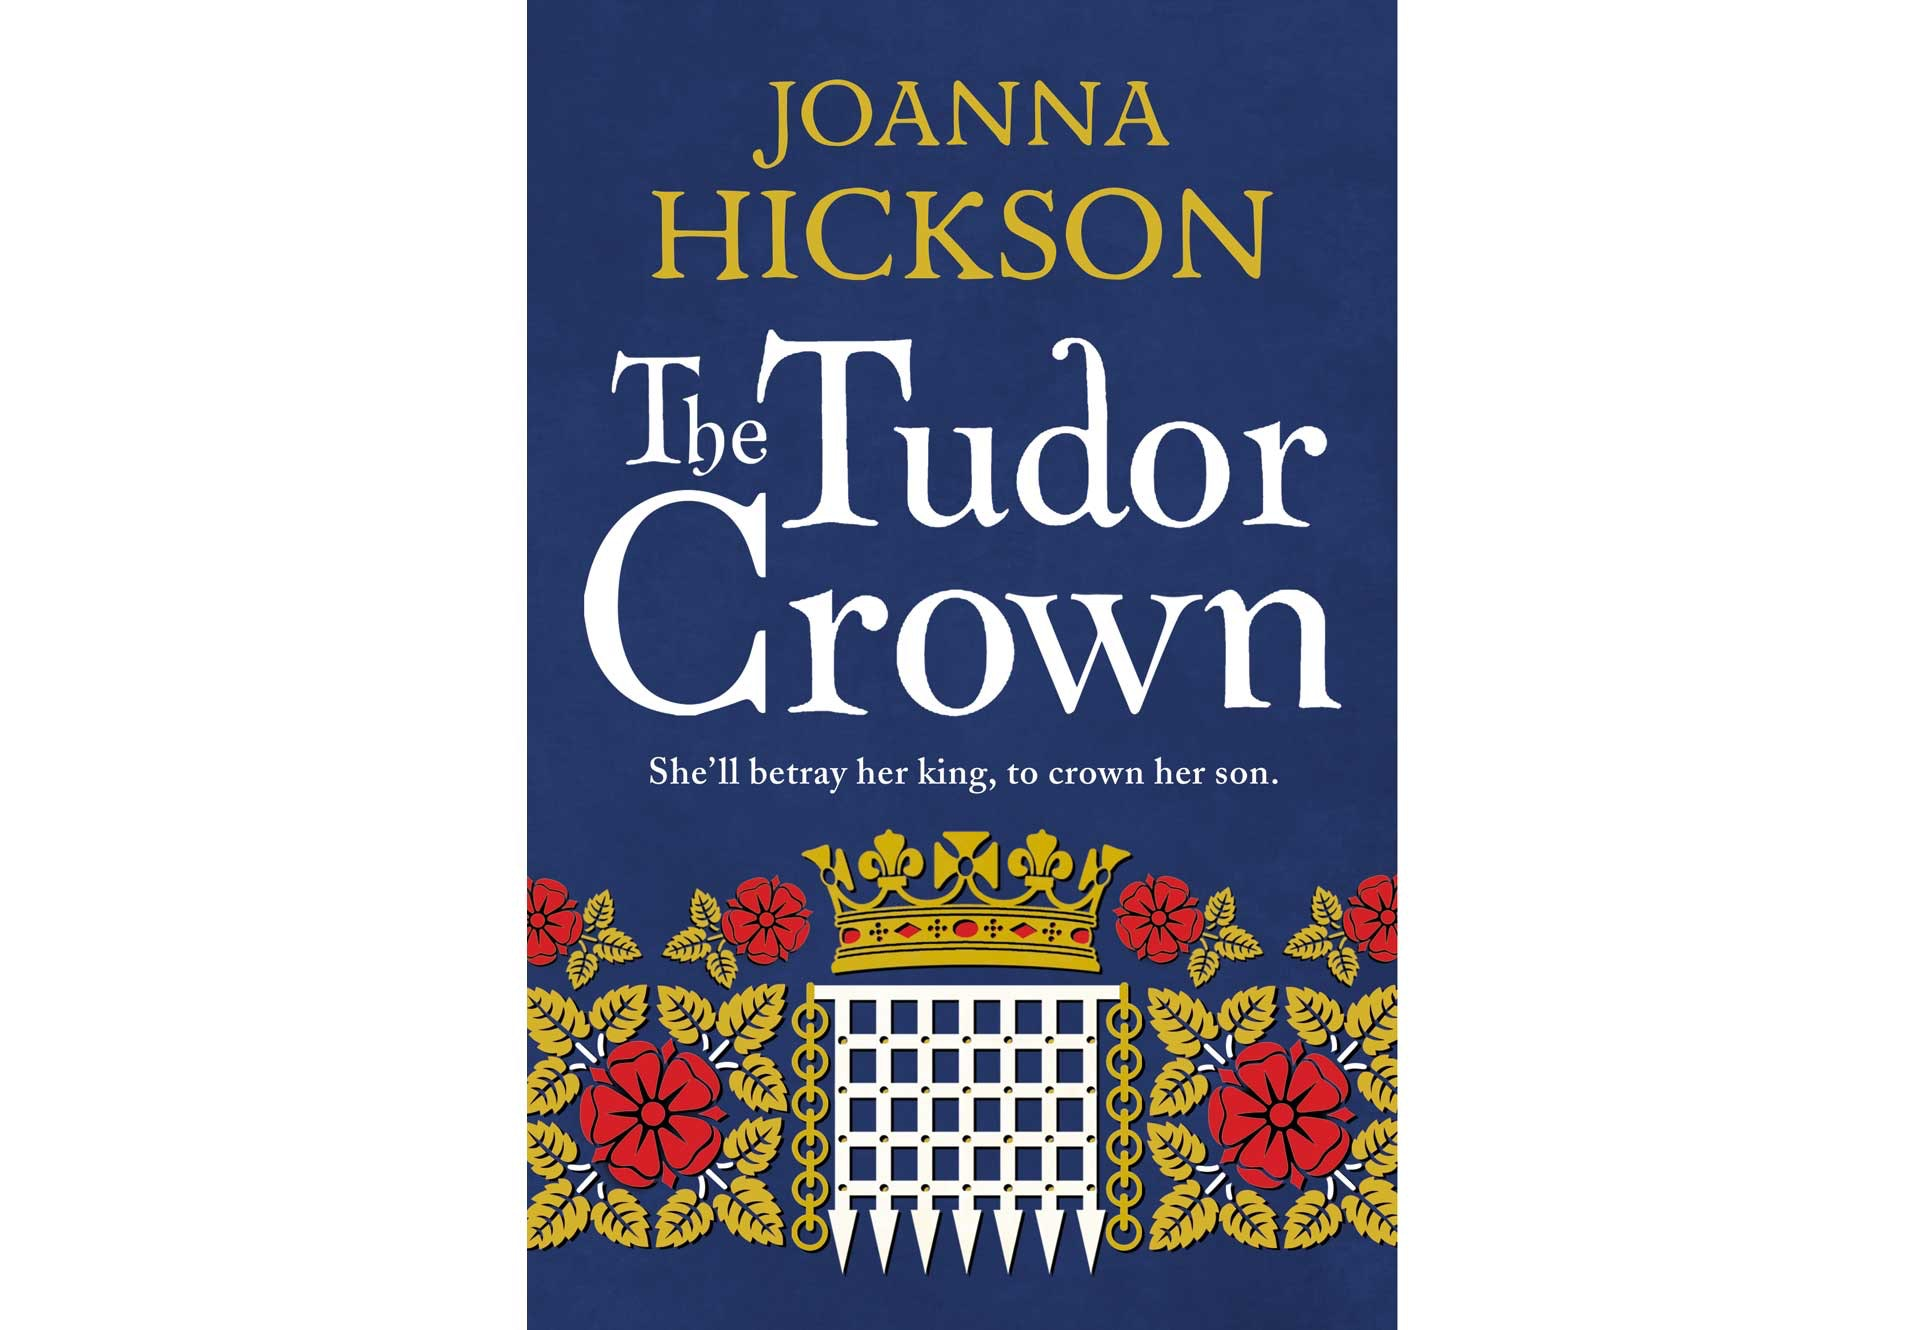 THE TUDOR CROWN BY JOANNA HICKSON  sweepstakes